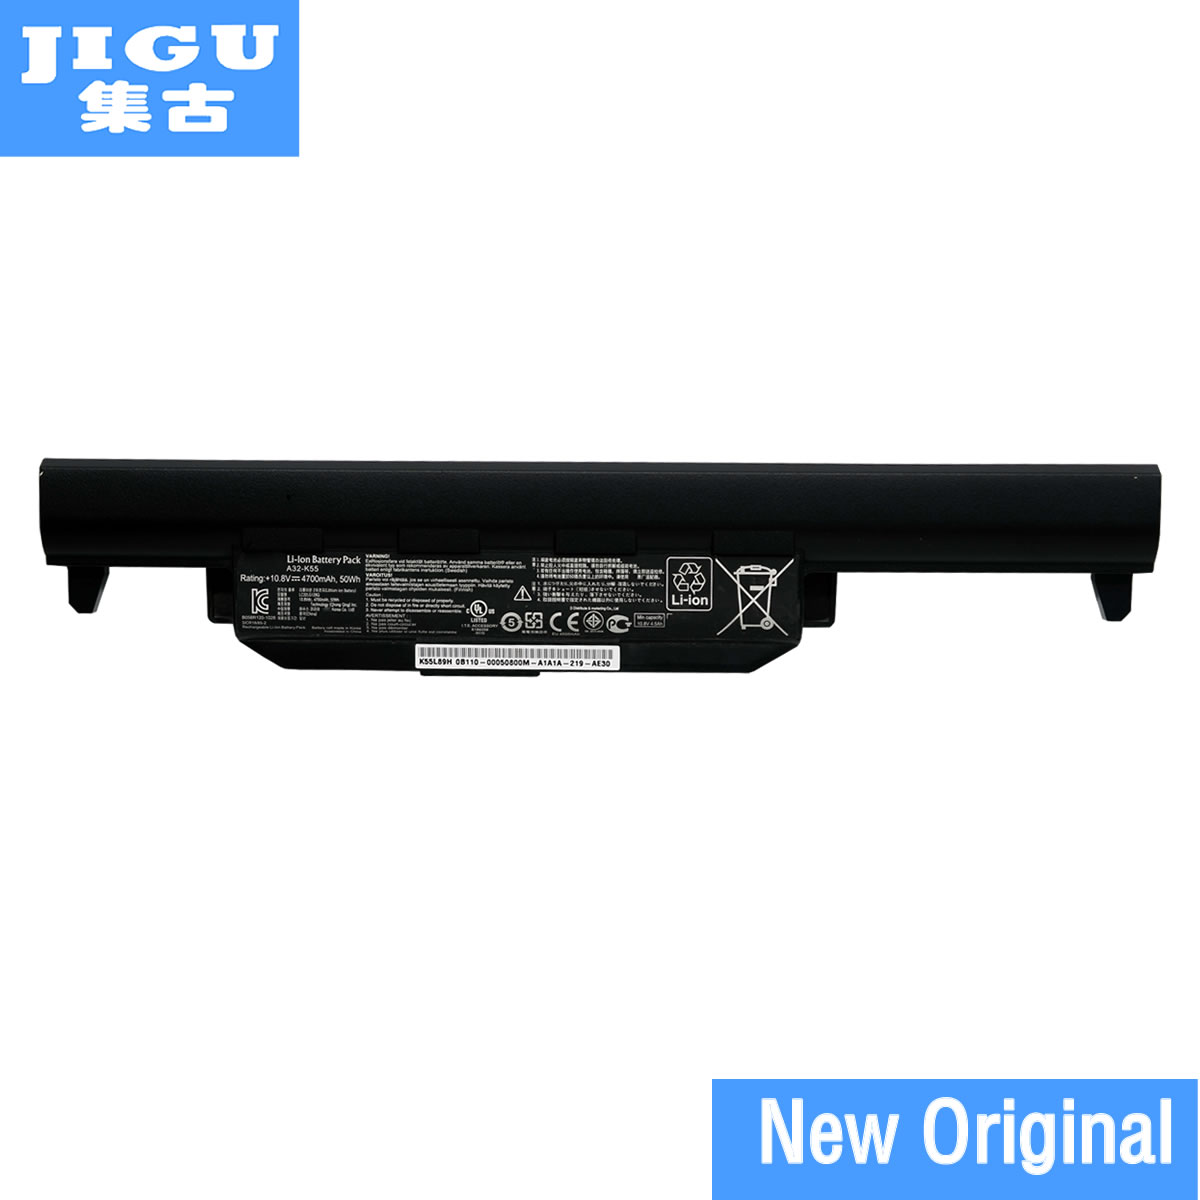 JIGU Original laptop Battery A32-K55 For Asus X45 X45A X45C X45V X45U X55 X55A X55C X55U X55V X75 X75A X75V X75VD U57 U57A U57V hsw 5200mah new 6 cells laptop battery for asus a45 a55 a75 k45 k55 k75 r400 r500 r700 u57 x45 x55 x75 a32 k55 a41 k55 bateria